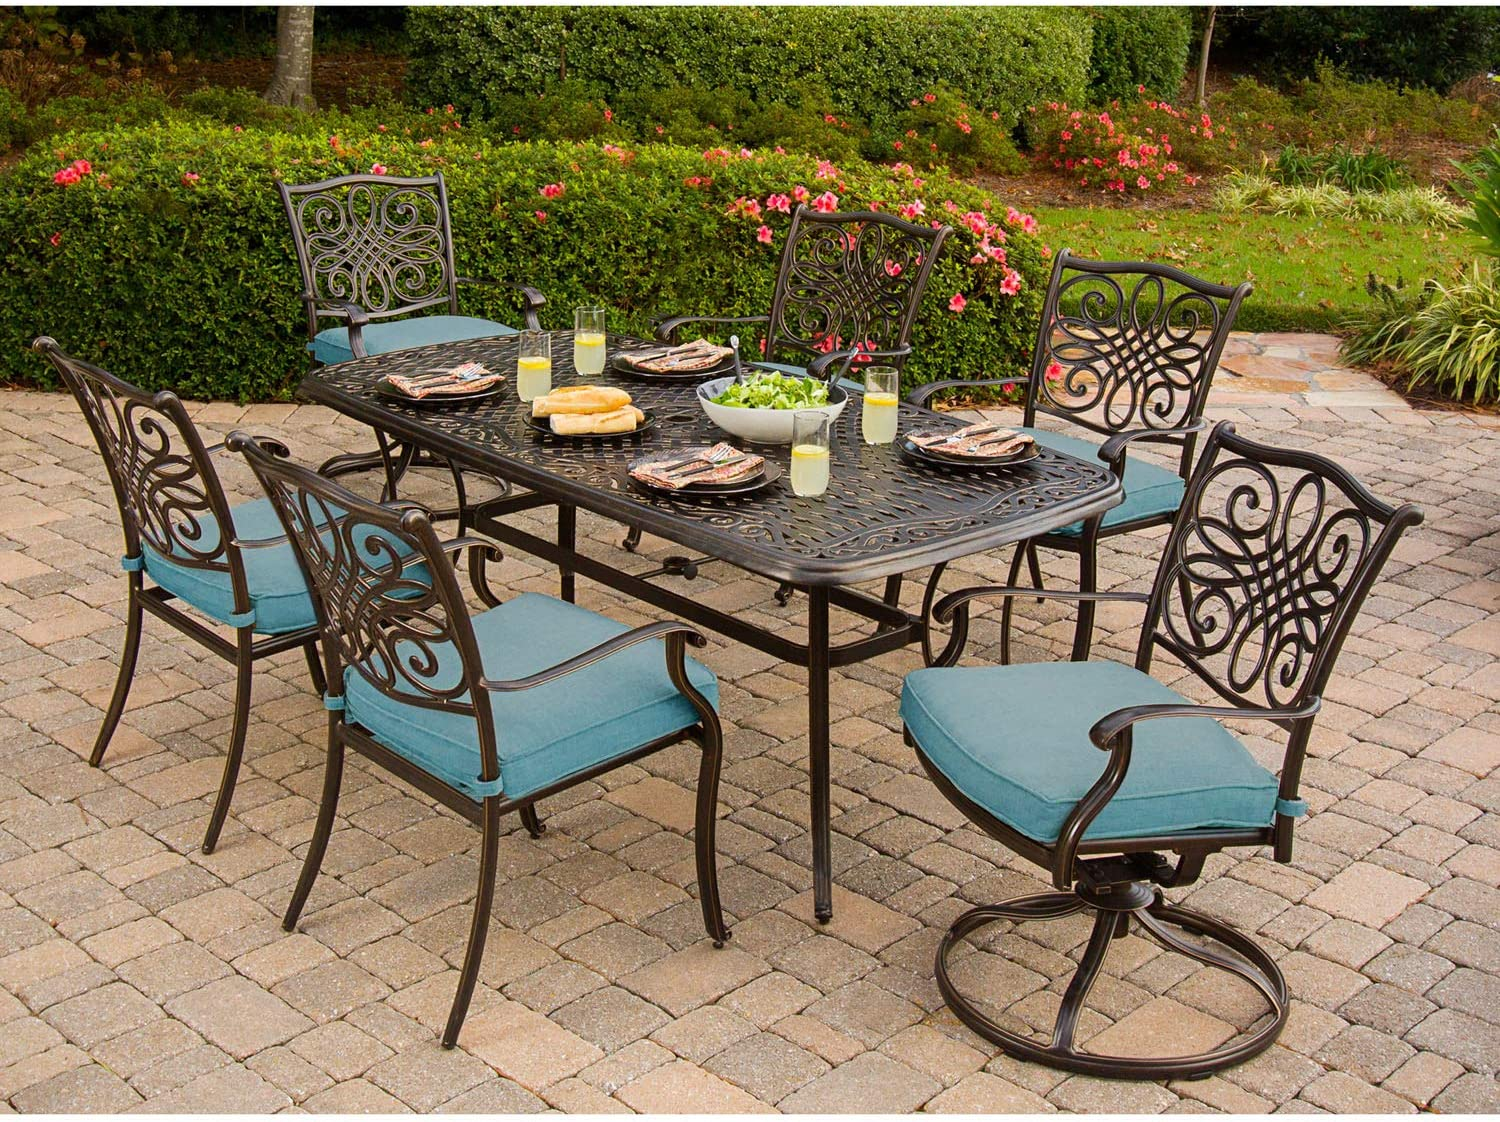 Hanover Traditions 10 Piece Cast Aluminum Outdoor Patio Dining Set, 10  Stationary Chairs, 10 Swivel Rocker Chairs, Brushed Bronze Finish with Blue  ...